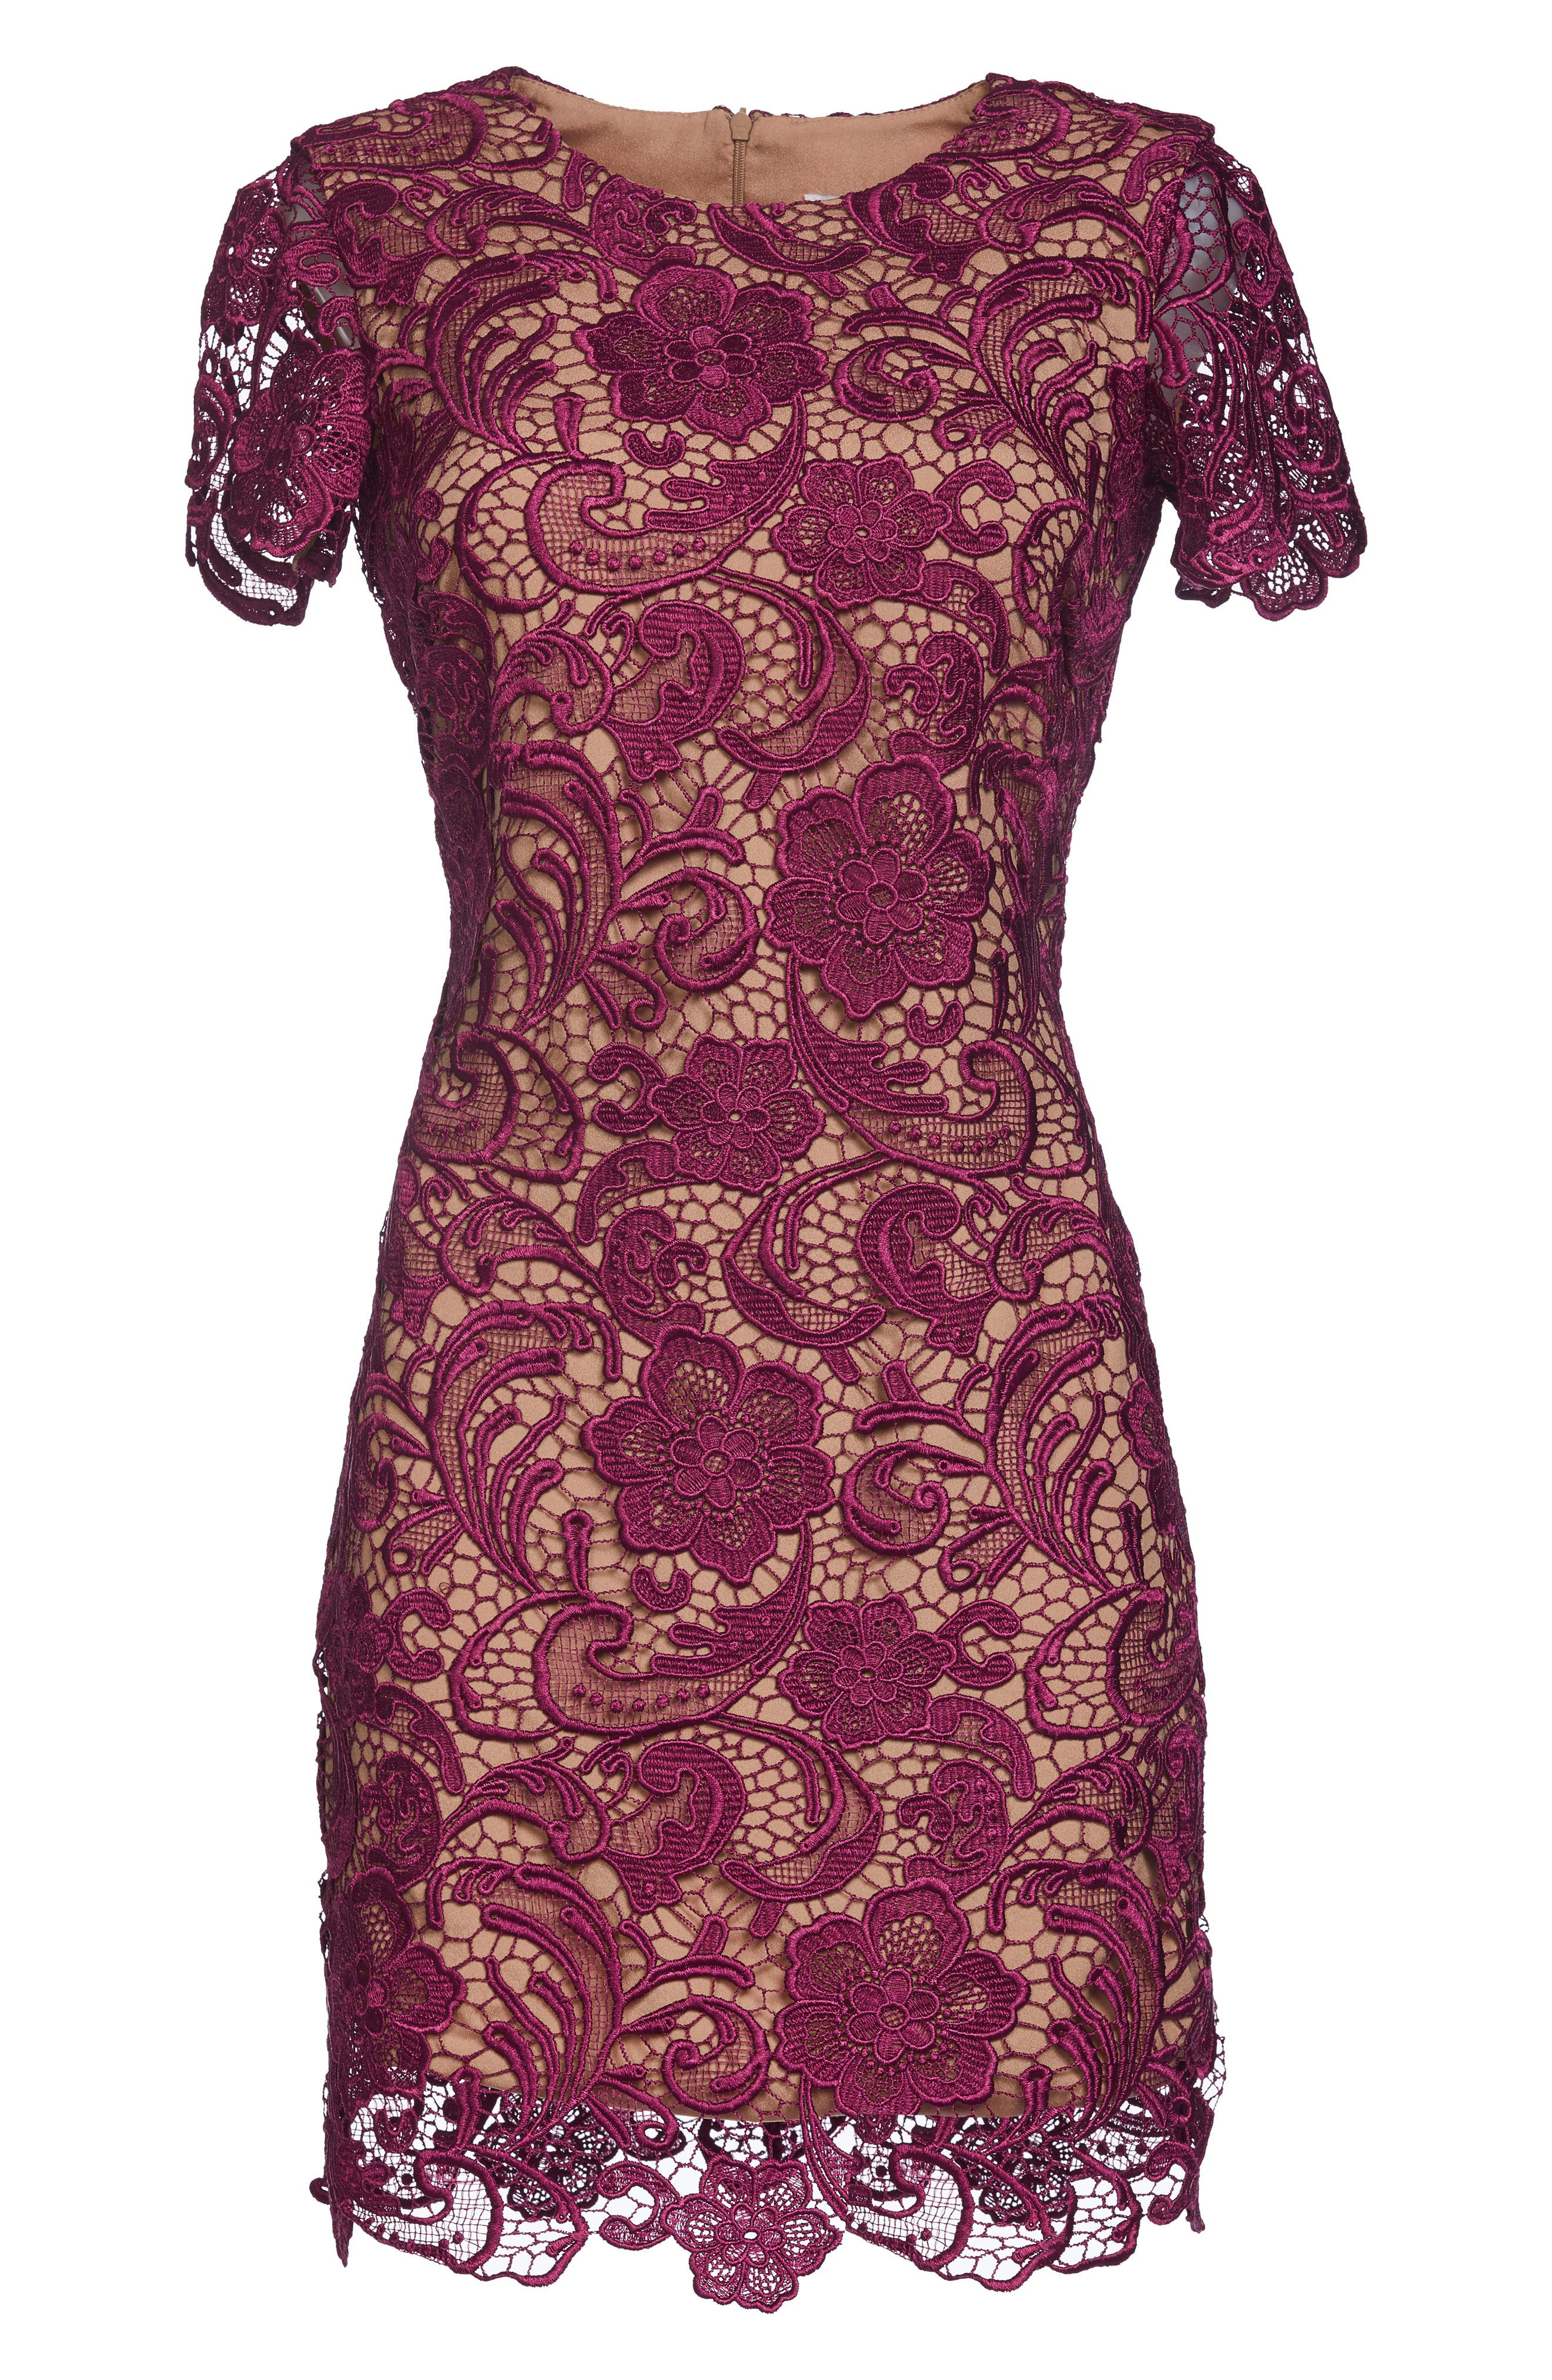 Anna Crochet Lace Sheath Dress,                             Alternate thumbnail 6, color,                             Mulberry/ Nude